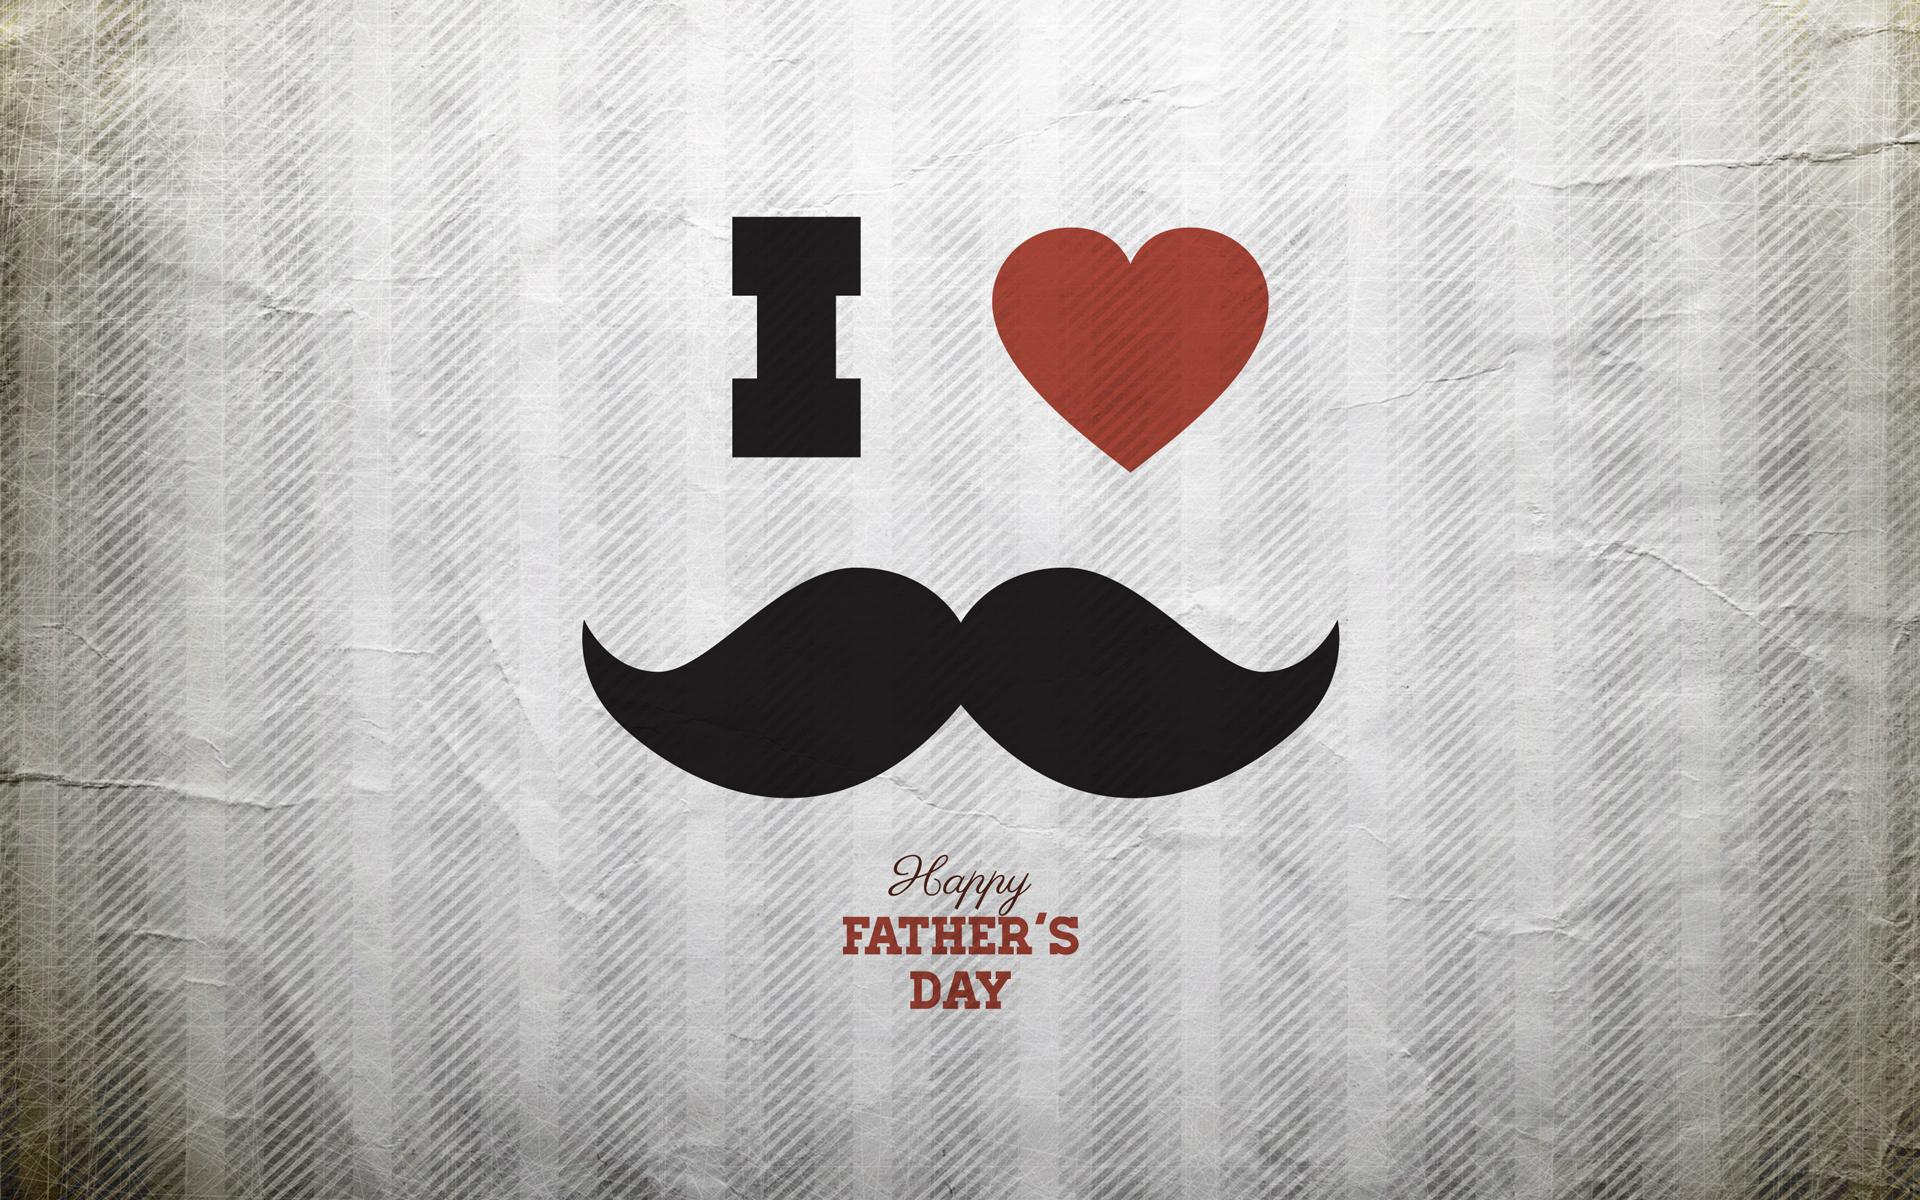 Happy Father's Day Wallpapers for Facebook